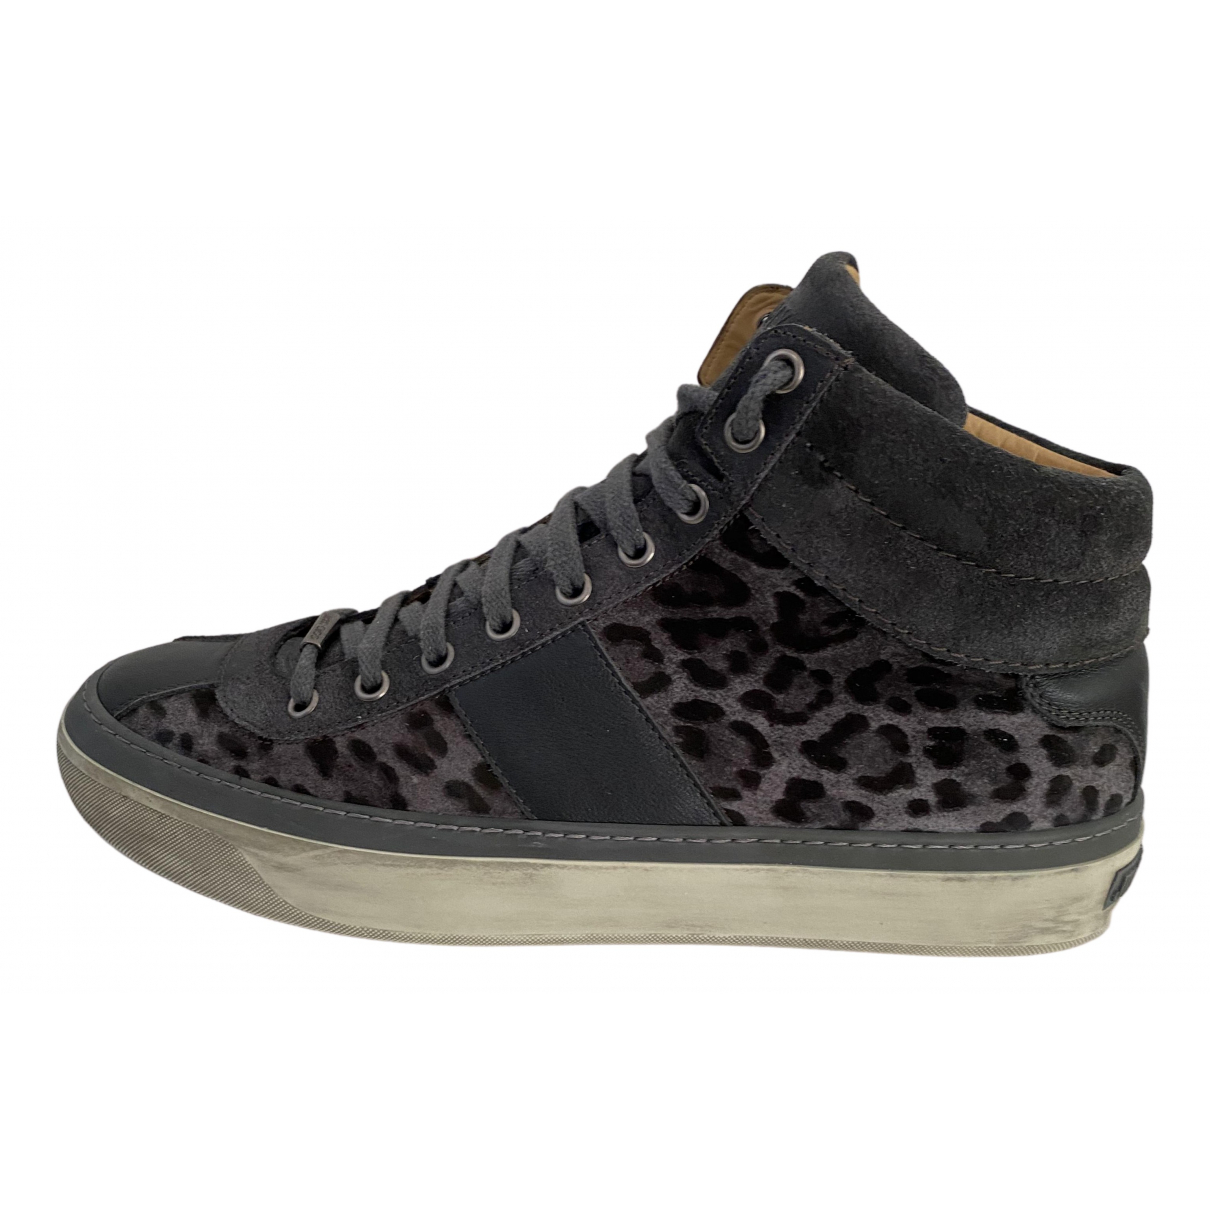 Jimmy Choo N Multicolour Leather Trainers for Men 42 EU